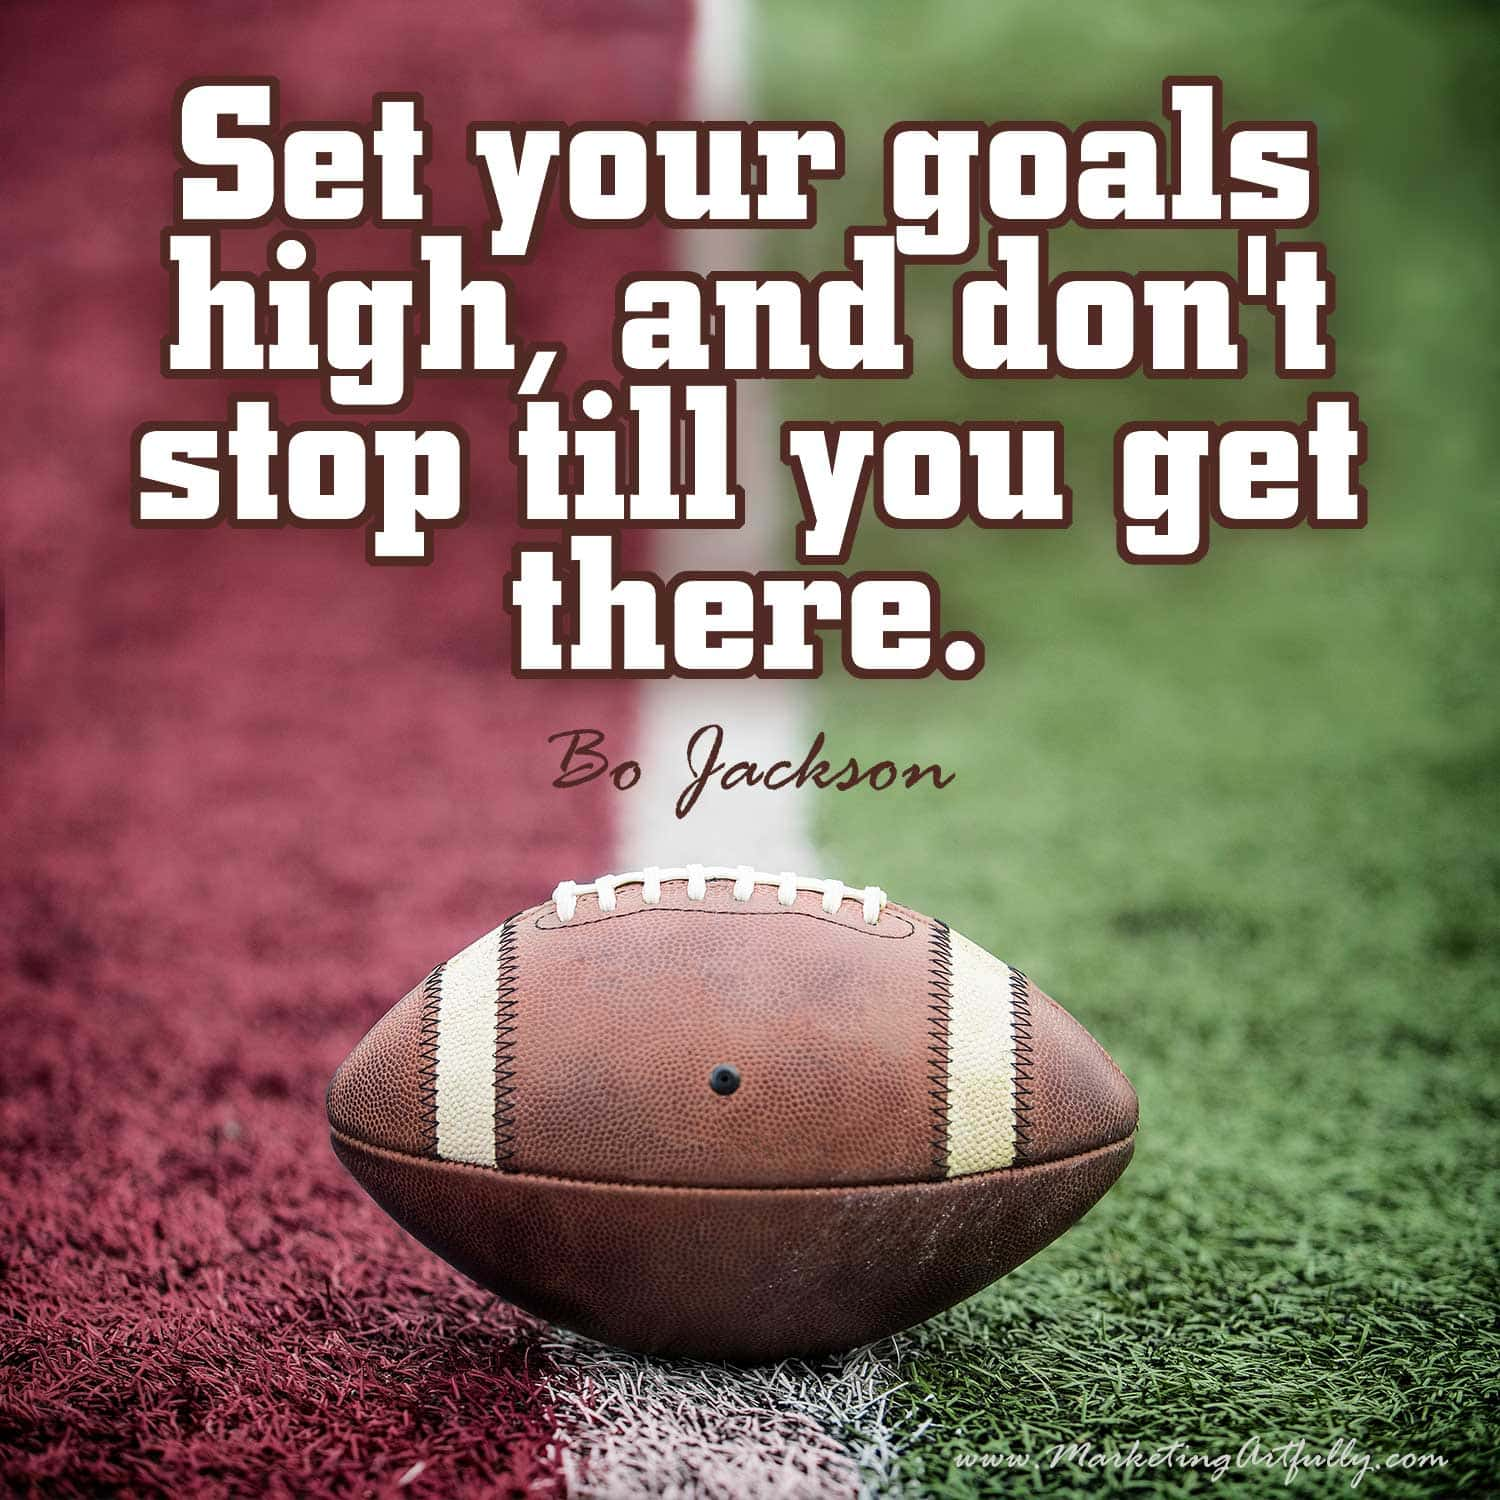 Set your goals high, and don't stop till you get there. Bo Jackson